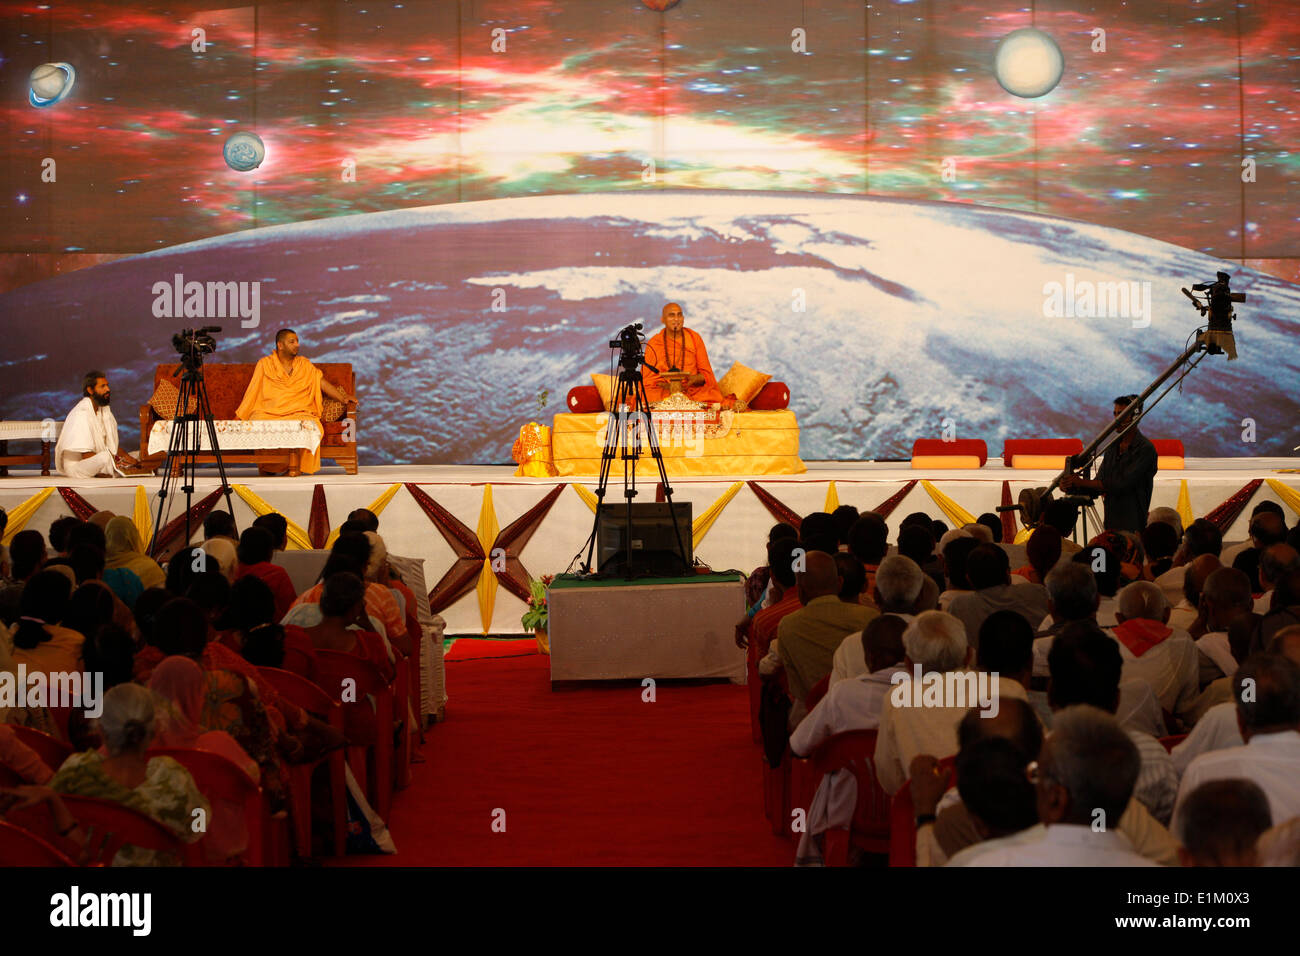 Spiritual leader Swami Avdeshanand Giri giving a lecture in his akhara in Kankhal during the Kumbh Mela - Stock Image